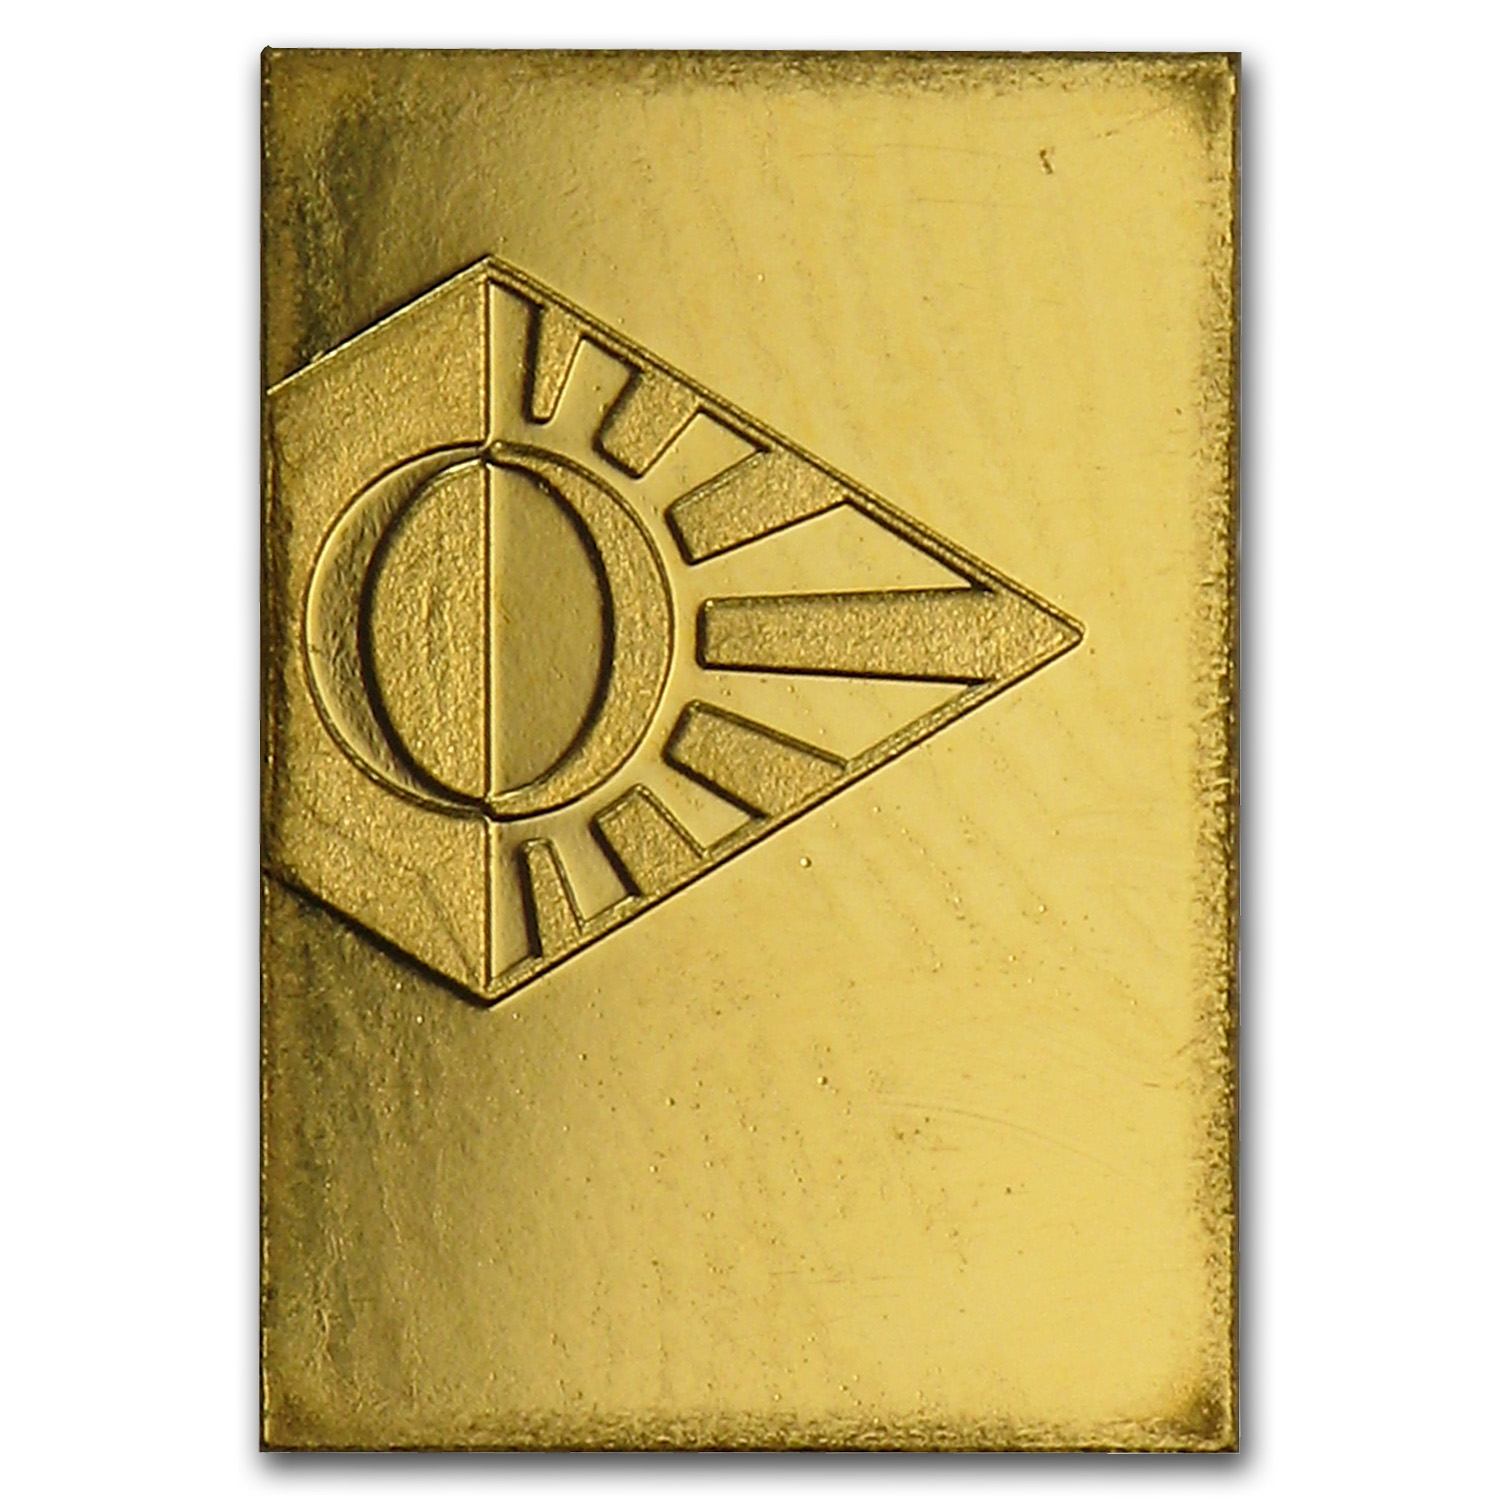 1 gram Gold Bar - Degussa (No Assay)